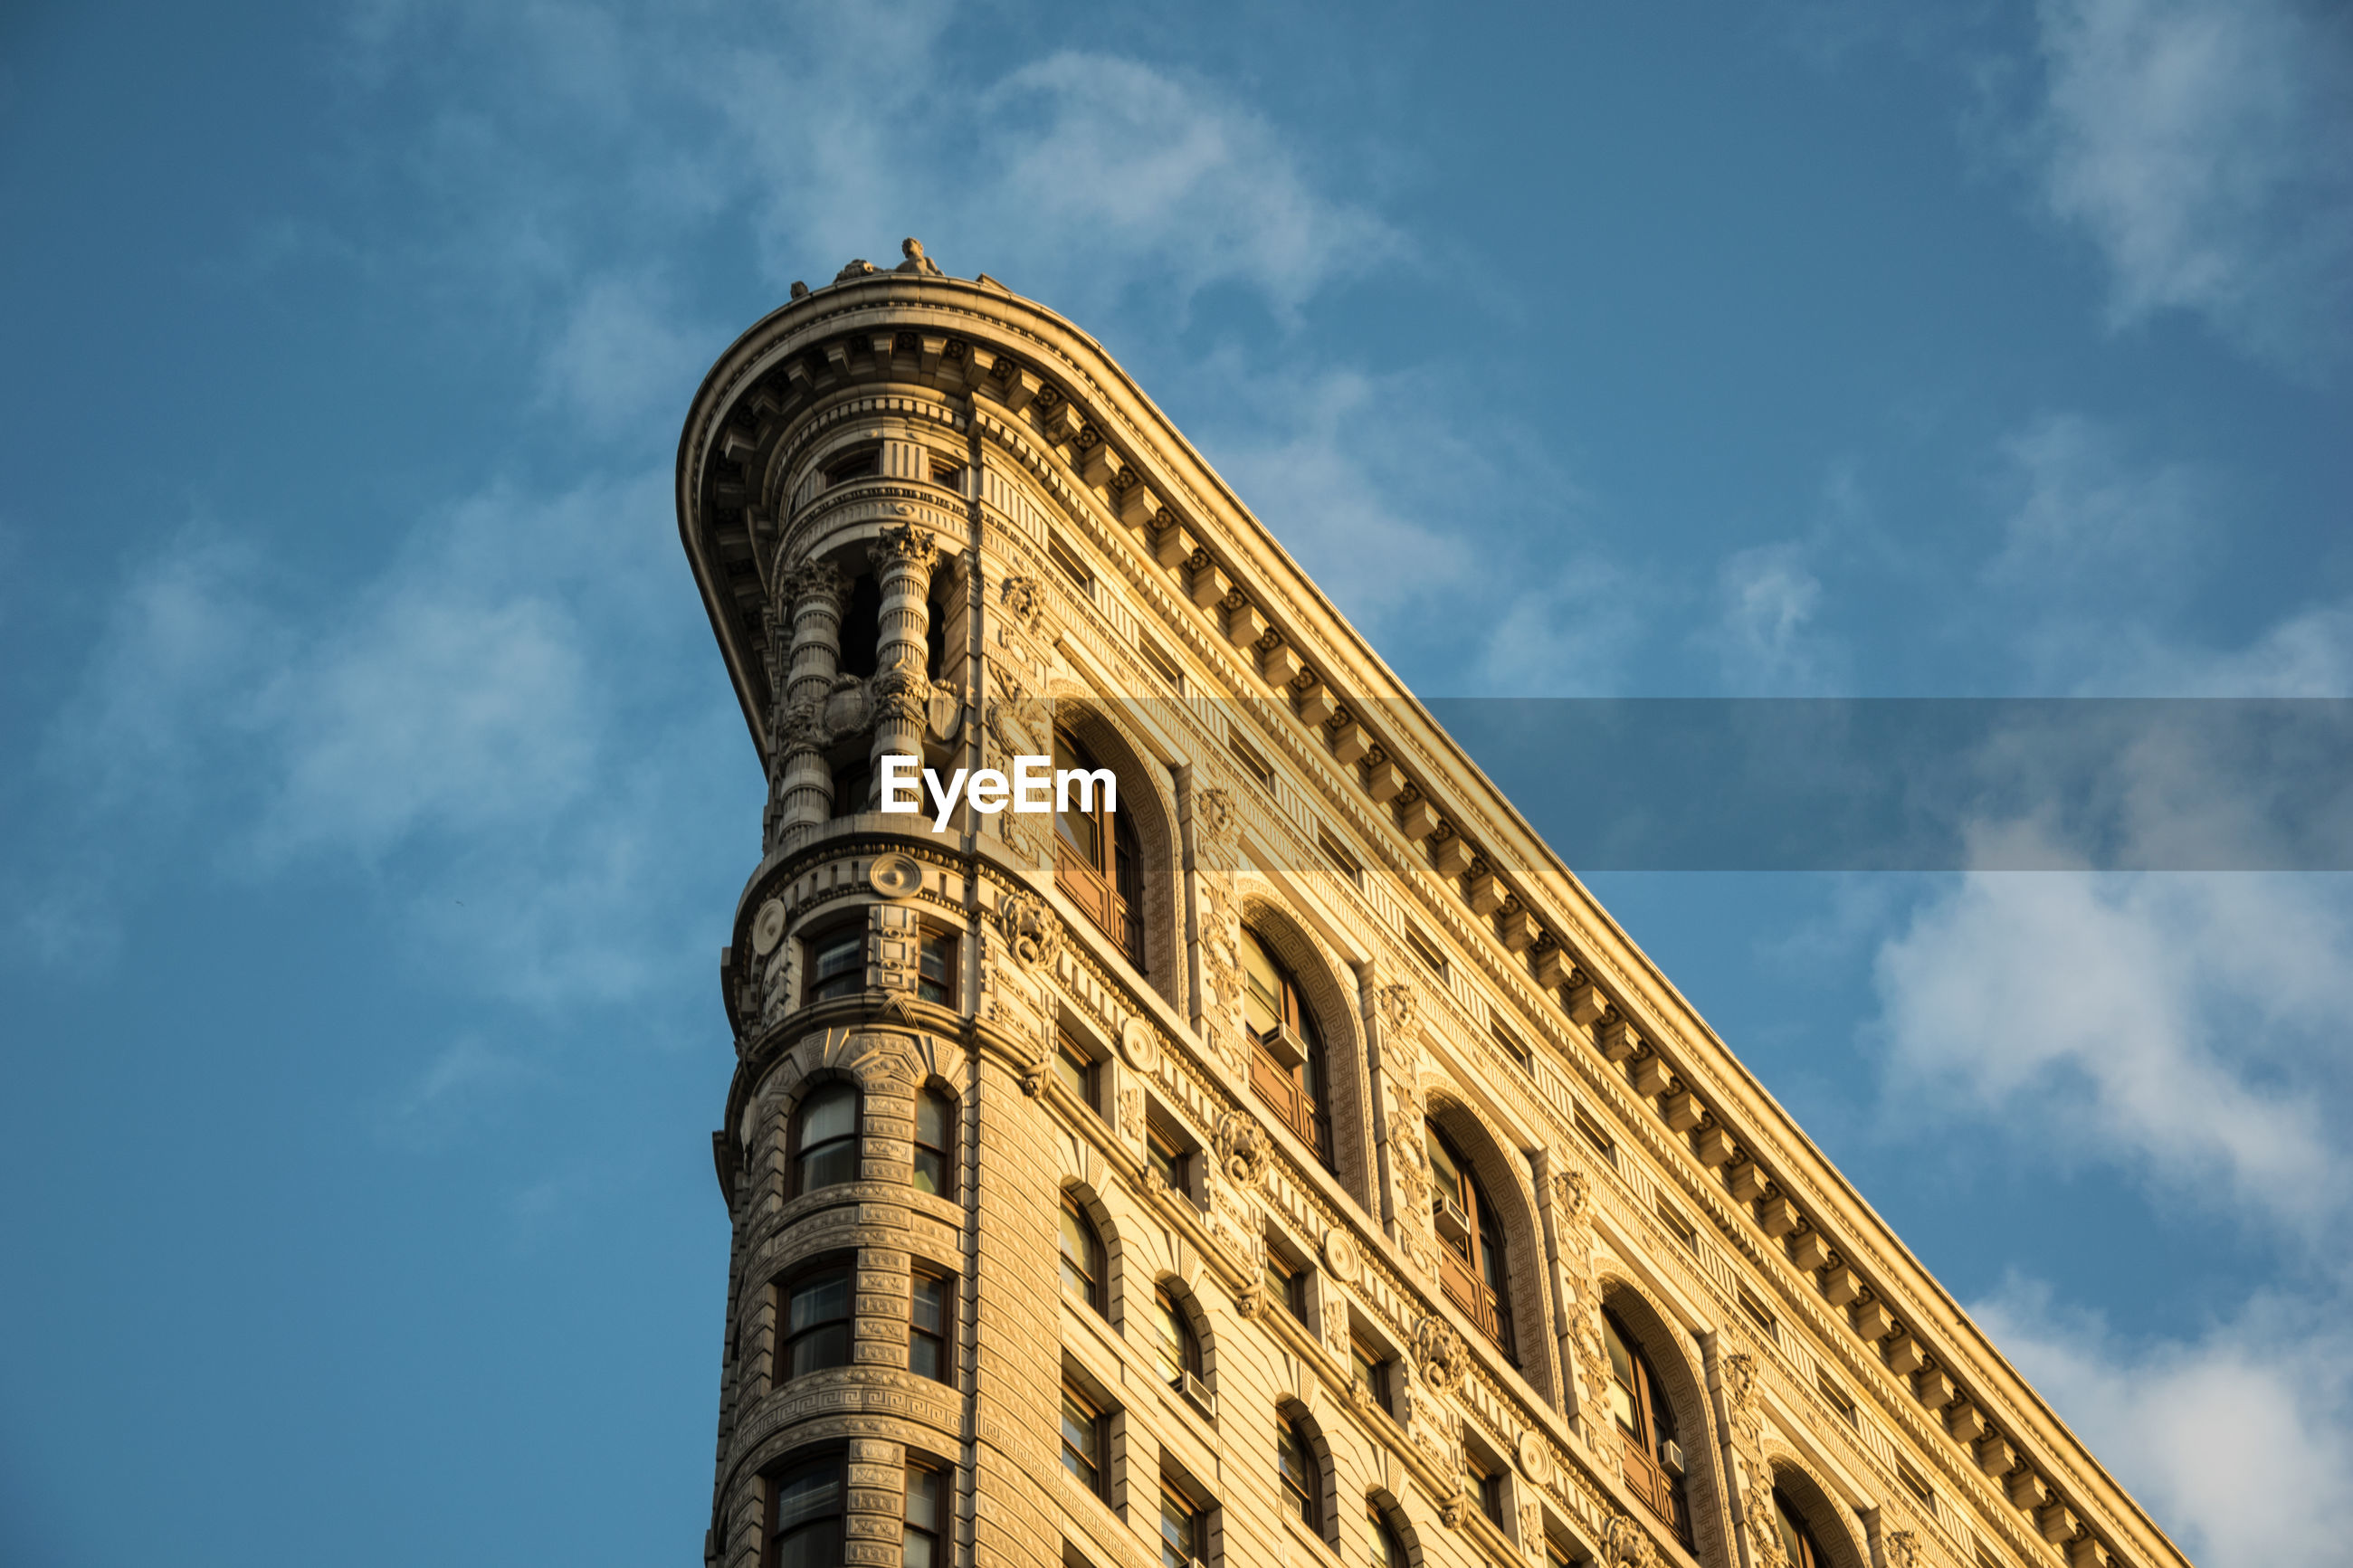 Low angle view of flatiron building against cloudy sky